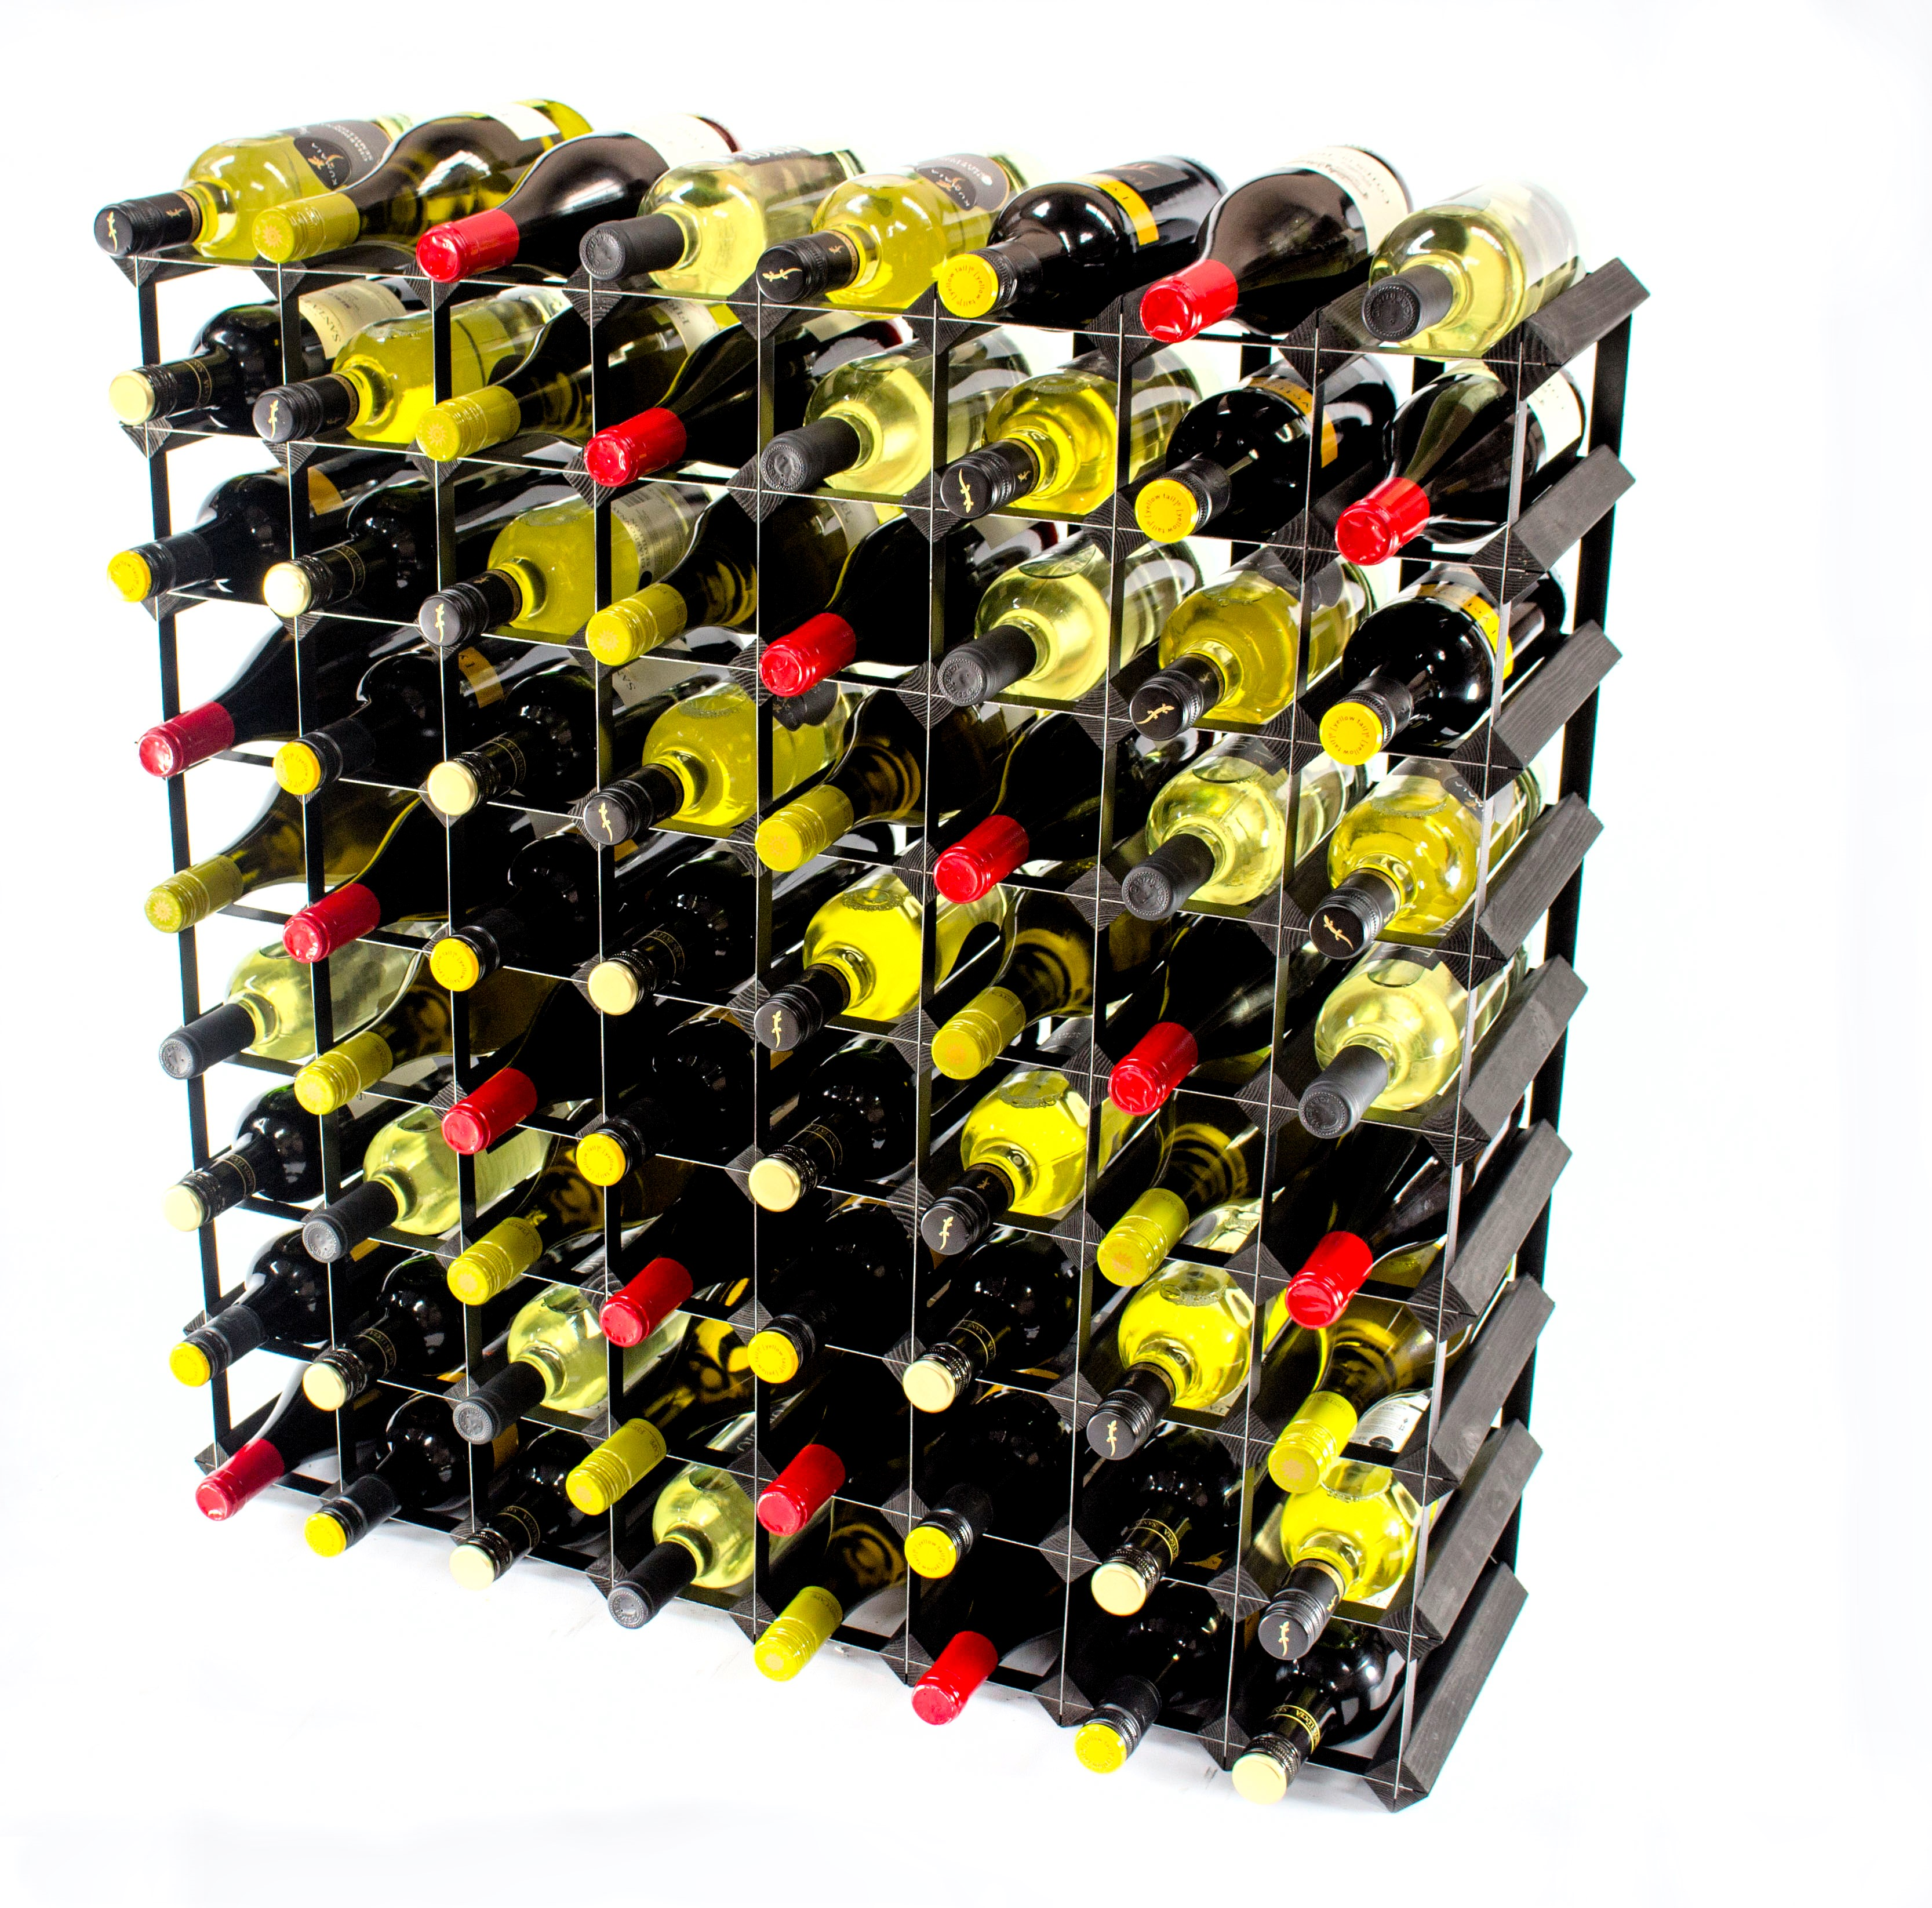 Other Uses For Wine Racks 72 Bottle Black Wood And Black Metal Wine Rack Ready Assembled